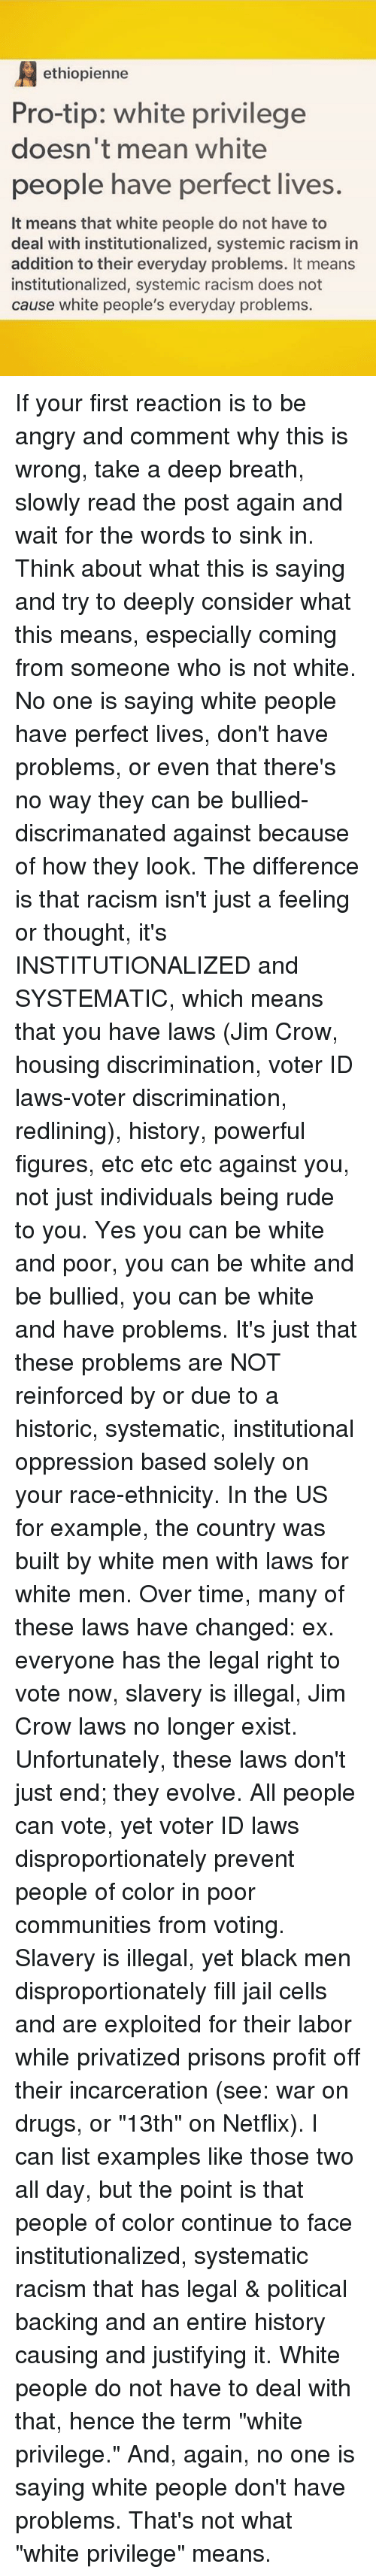 """Drugs, Jail, and Memes: ethiopienne  Pro-tip: white privilege  doesn't mean white  people have perfect lives.  It means that white people do not have to  deal with institutionalized, systemic racism in  addition to their everyday problems. It means  institutionalized, systemic racism does not  cause white people's everyday problems. If your first reaction is to be angry and comment why this is wrong, take a deep breath, slowly read the post again and wait for the words to sink in. Think about what this is saying and try to deeply consider what this means, especially coming from someone who is not white. No one is saying white people have perfect lives, don't have problems, or even that there's no way they can be bullied-discrimanated against because of how they look. The difference is that racism isn't just a feeling or thought, it's INSTITUTIONALIZED and SYSTEMATIC, which means that you have laws (Jim Crow, housing discrimination, voter ID laws-voter discrimination, redlining), history, powerful figures, etc etc etc against you, not just individuals being rude to you. Yes you can be white and poor, you can be white and be bullied, you can be white and have problems. It's just that these problems are NOT reinforced by or due to a historic, systematic, institutional oppression based solely on your race-ethnicity. In the US for example, the country was built by white men with laws for white men. Over time, many of these laws have changed: ex. everyone has the legal right to vote now, slavery is illegal, Jim Crow laws no longer exist. Unfortunately, these laws don't just end; they evolve. All people can vote, yet voter ID laws disproportionately prevent people of color in poor communities from voting. Slavery is illegal, yet black men disproportionately fill jail cells and are exploited for their labor while privatized prisons profit off their incarceration (see: war on drugs, or """"13th"""" on Netflix). I can list examples like those two all day, but the point is that peop"""